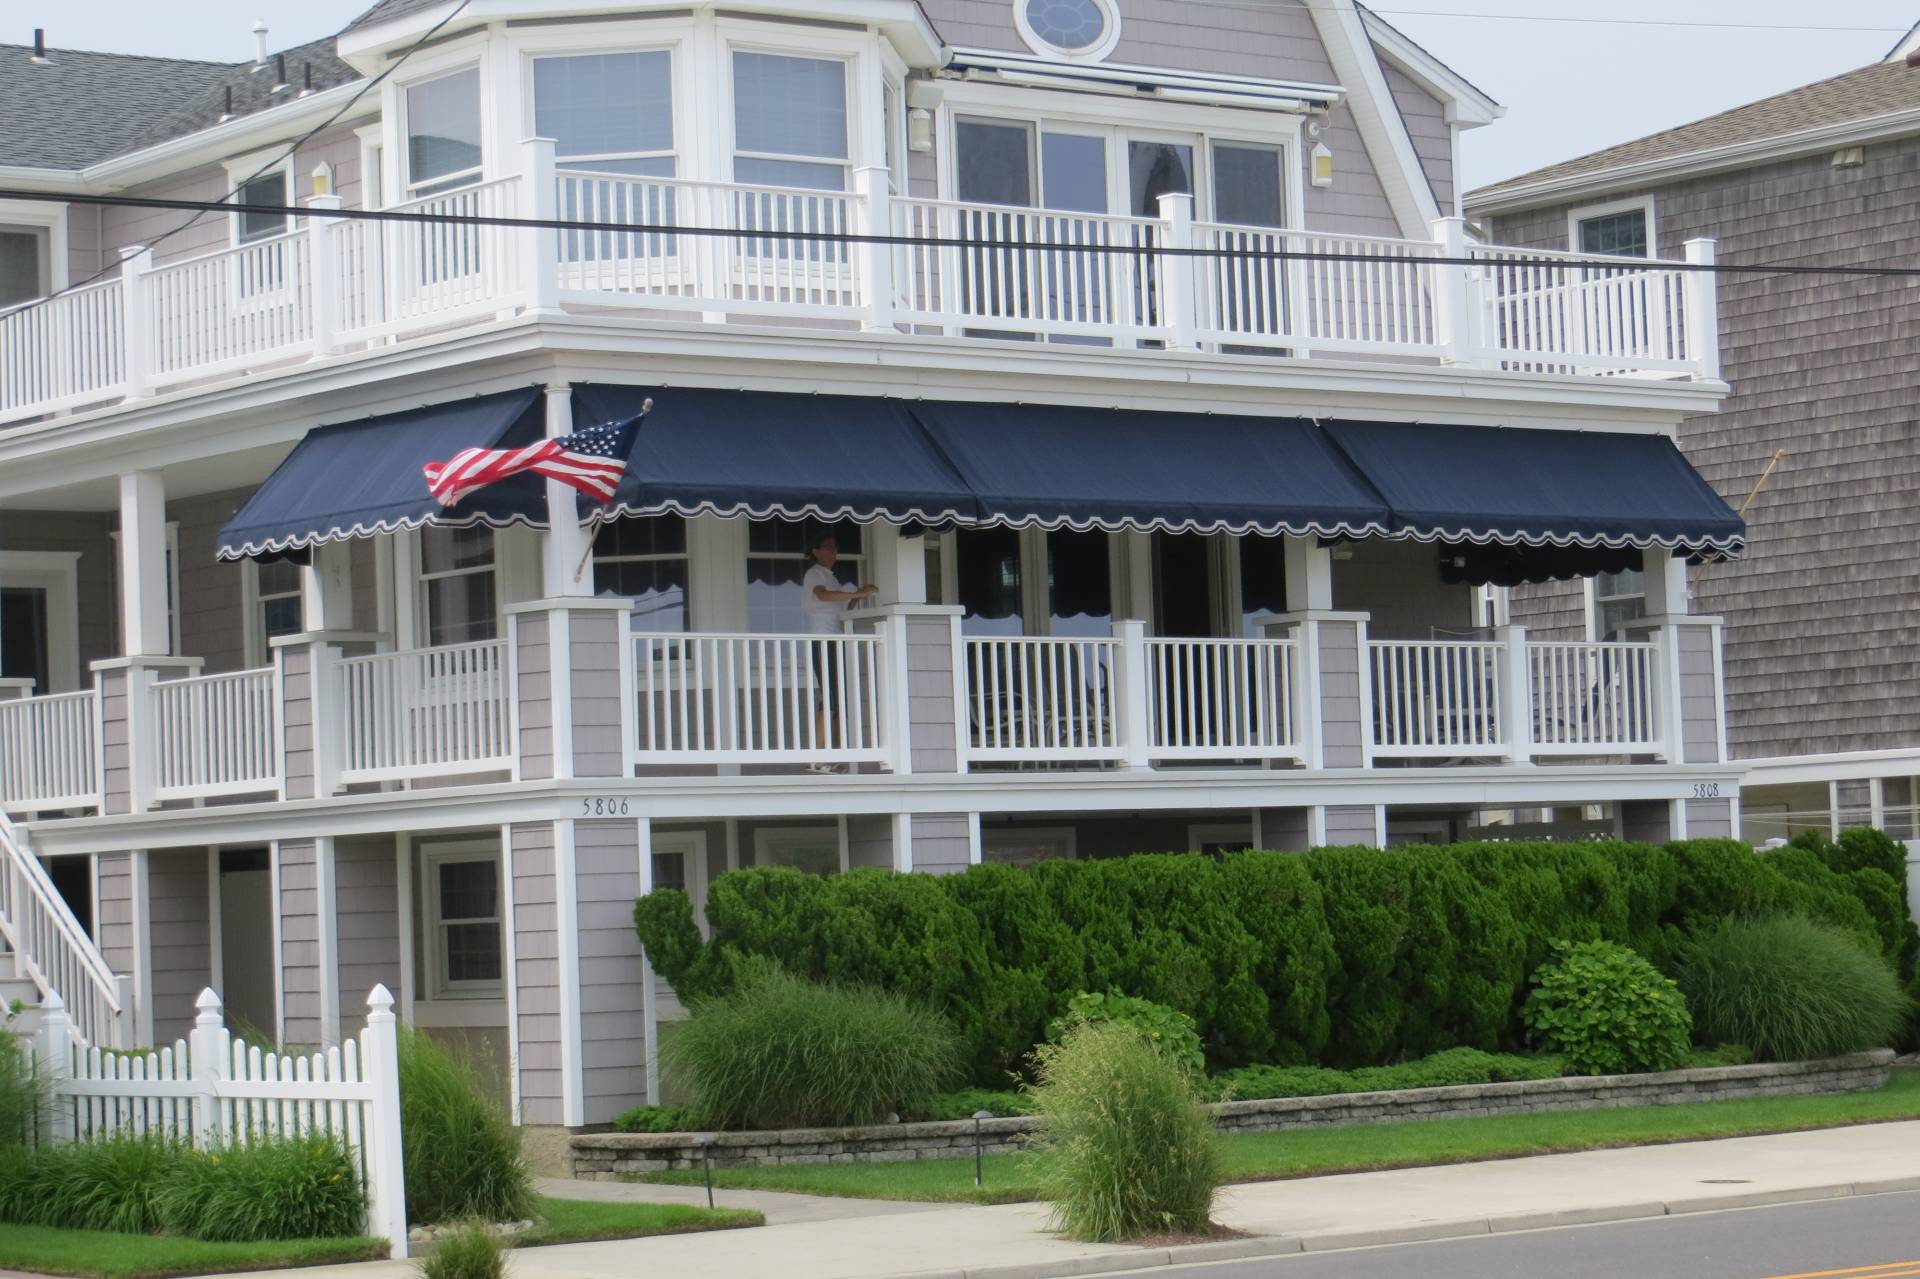 Porch awnings with an appliqued scalloped edge kreider 39 s for Front porch awnings